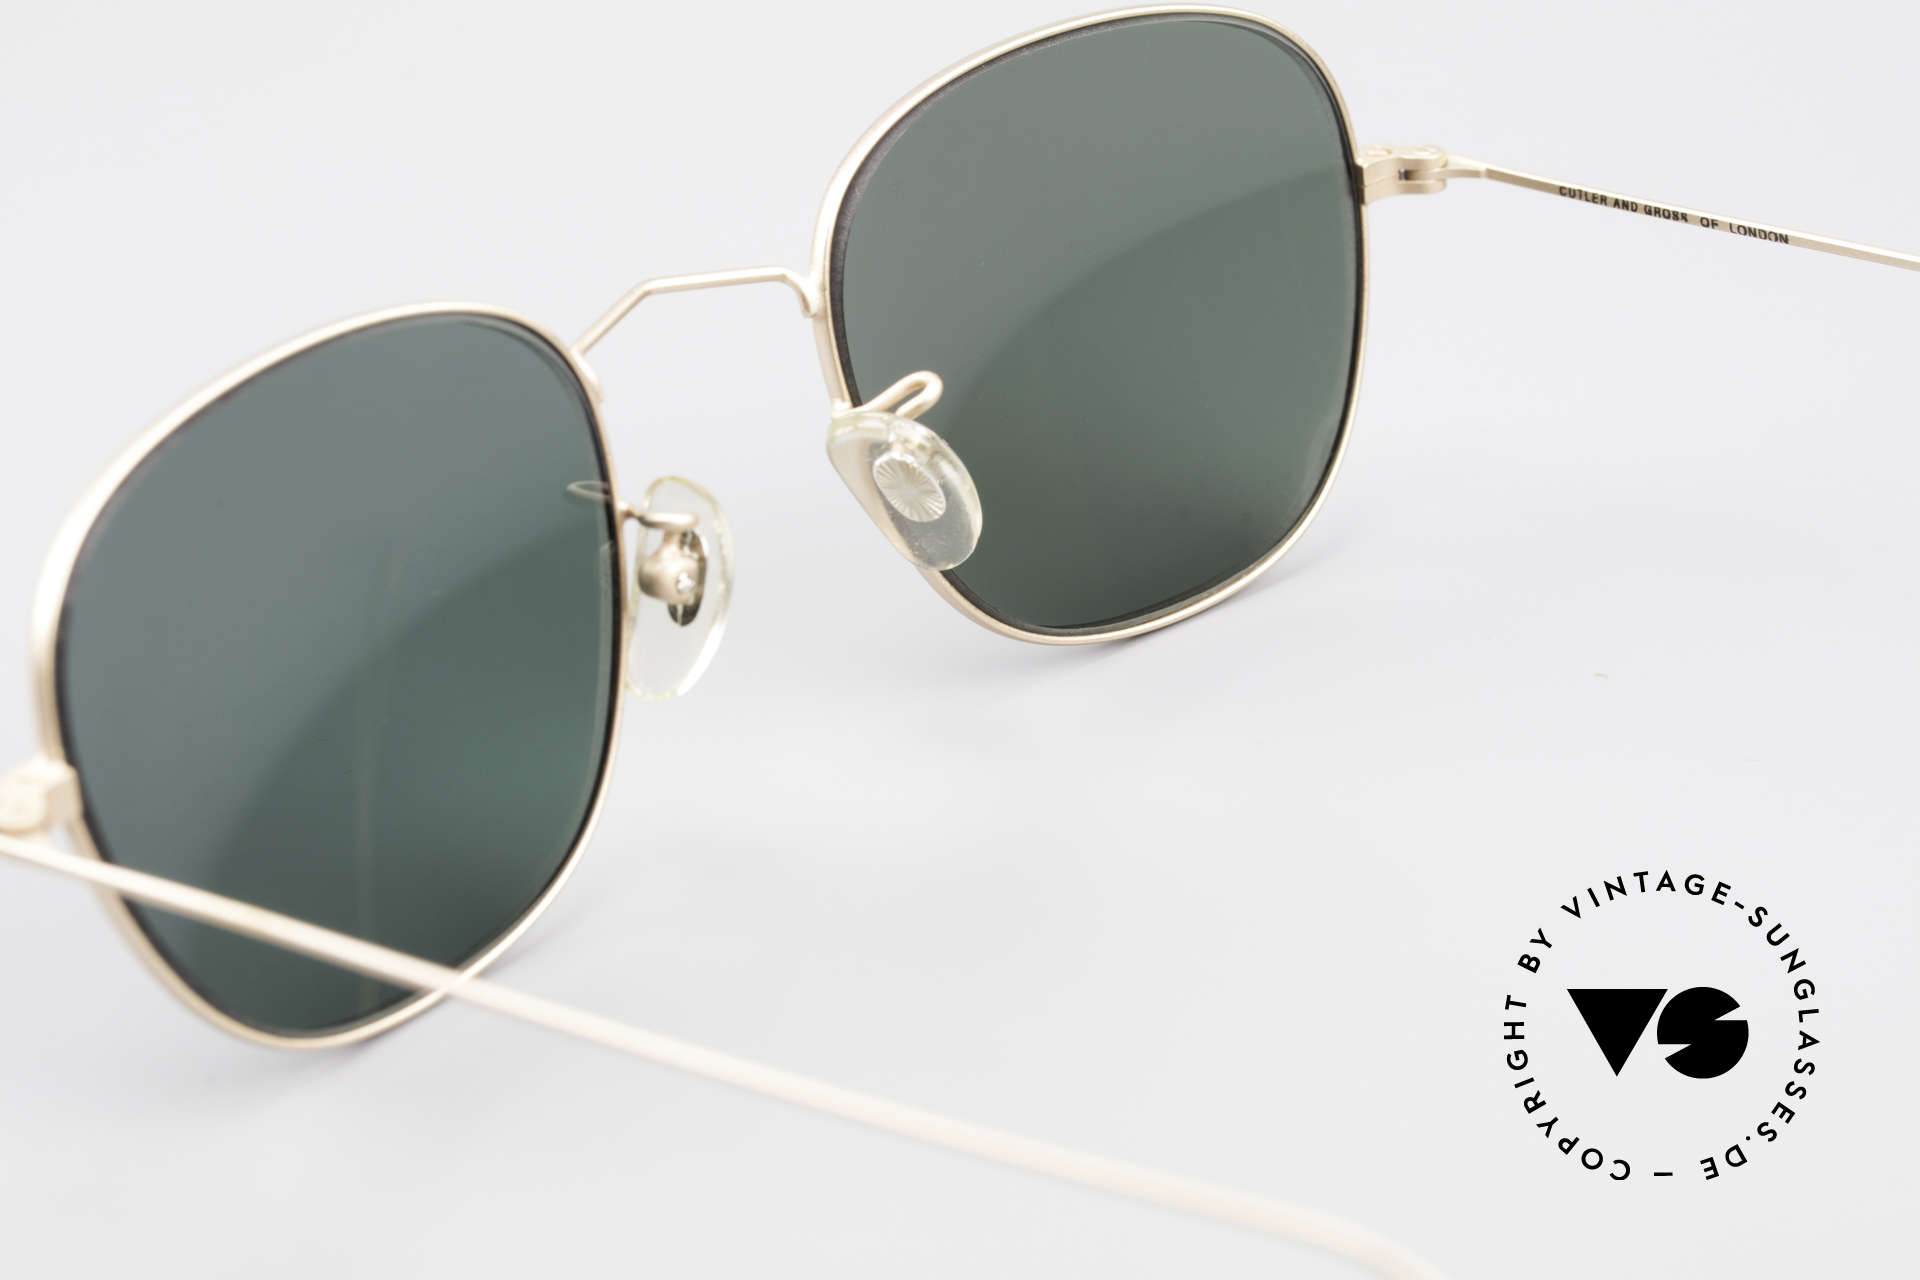 Cutler And Gross 0307 Classic 90s Designer Sunglasses, NO RETRO fashion, but a unique 20 years old Original!, Made for Men and Women